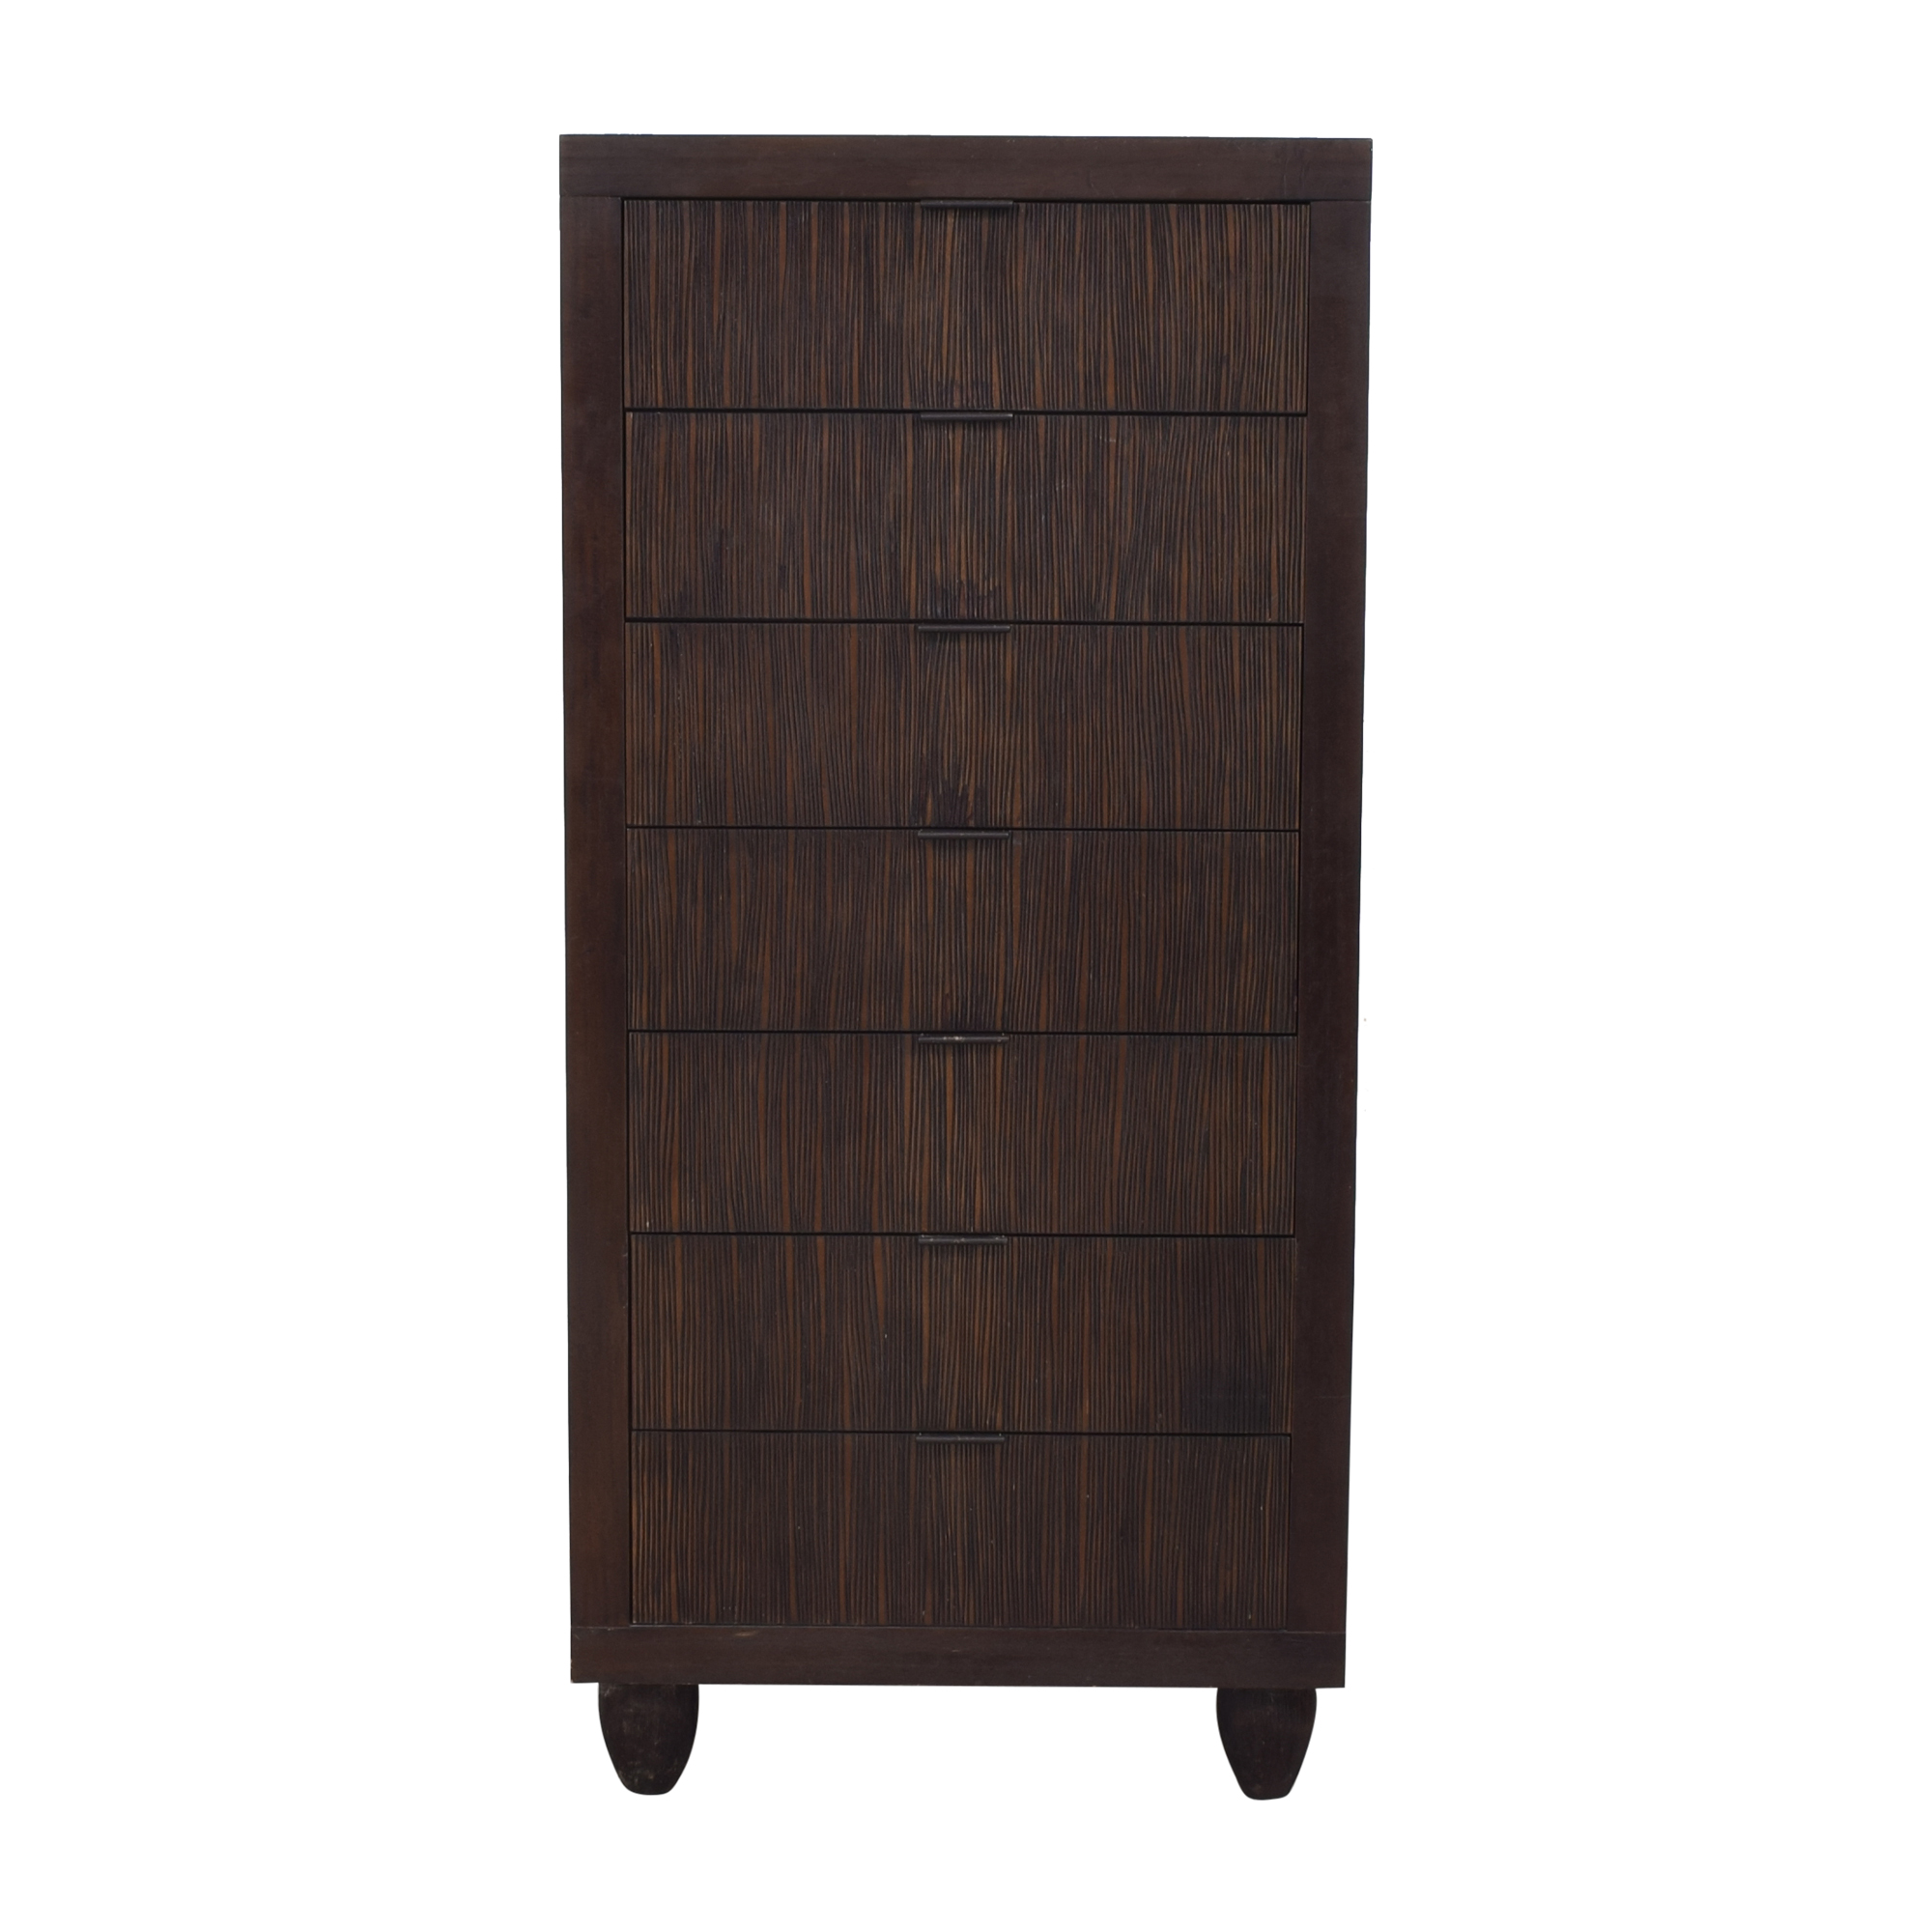 Crate & Barrel Crate & Barrel Tall Chest of Drawers ct